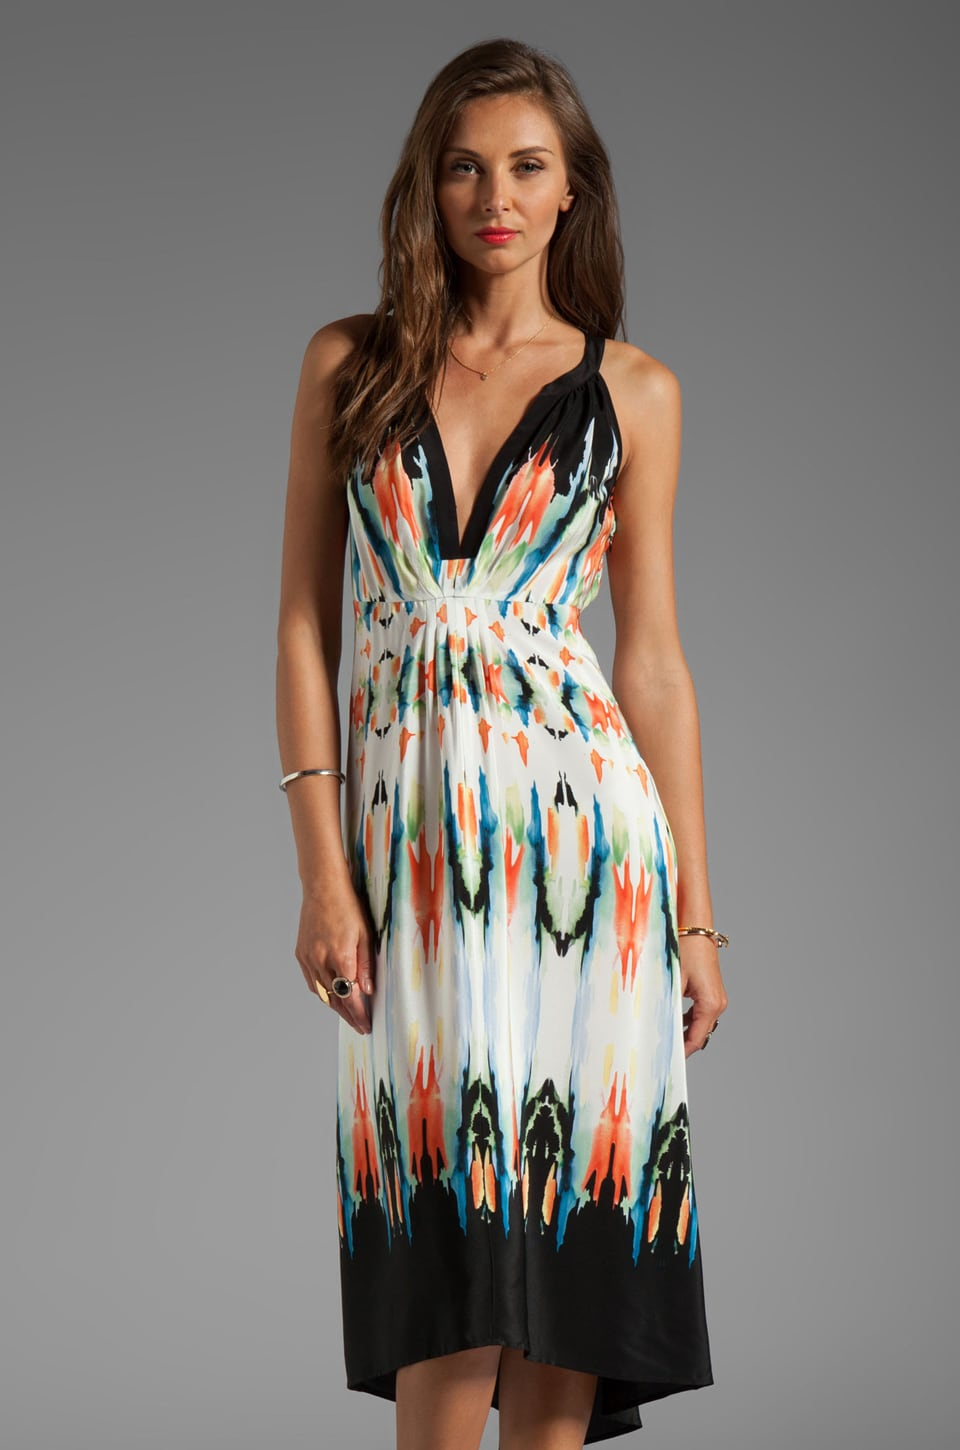 Twelfth Street By Cynthia Vincent Palma Hi/Low Maxi Dress in Watercolor Border